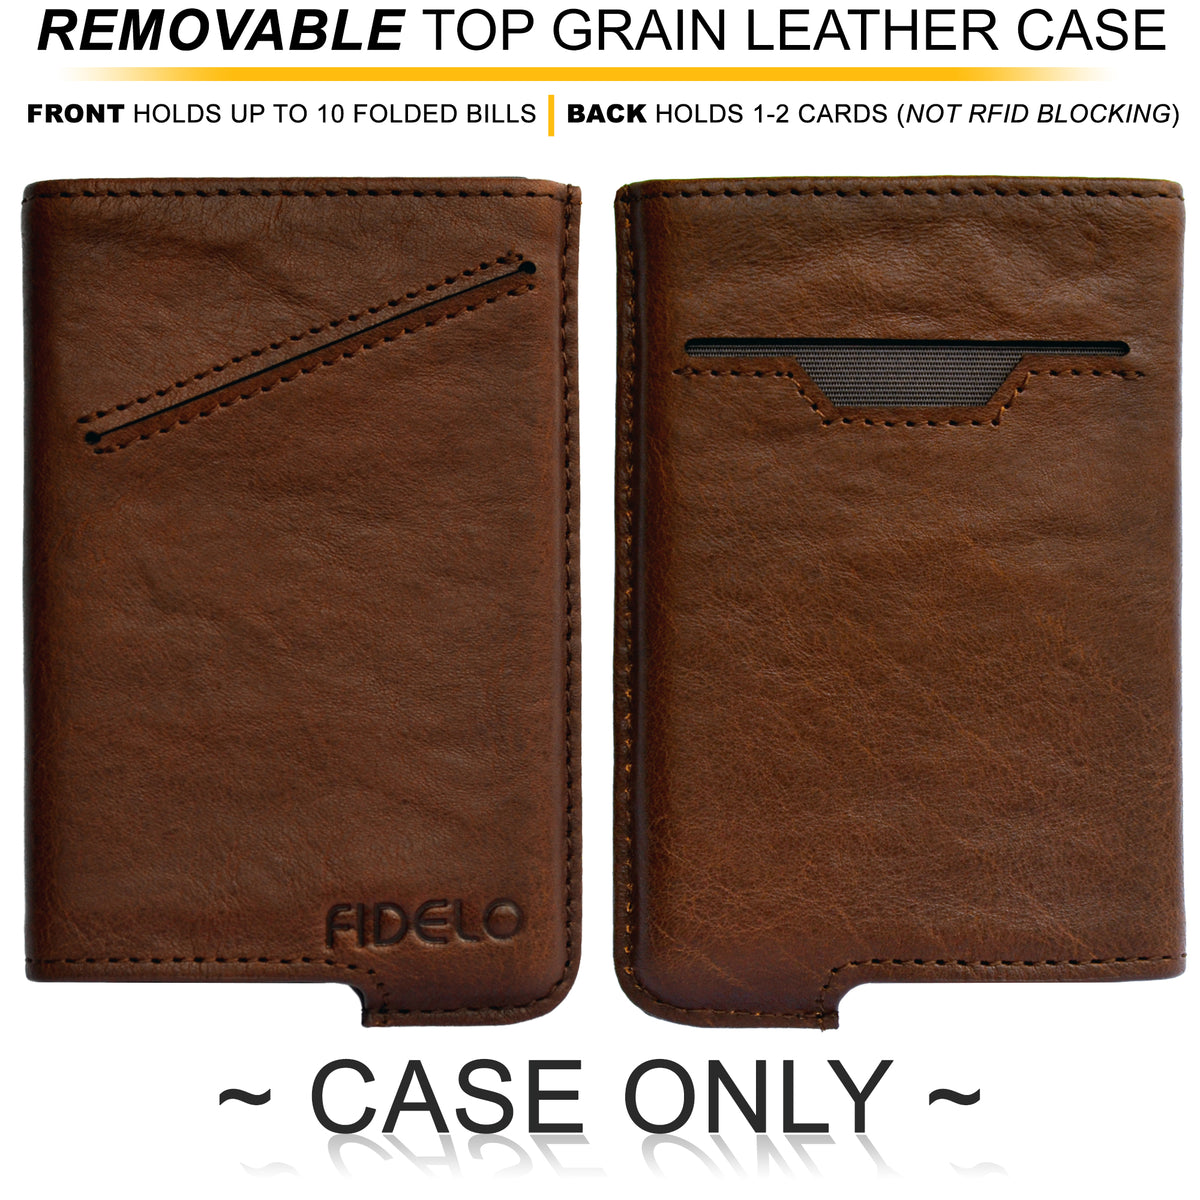 HYBRID CASE ONLY - Vintage Brown Vegetable Tanned Leather